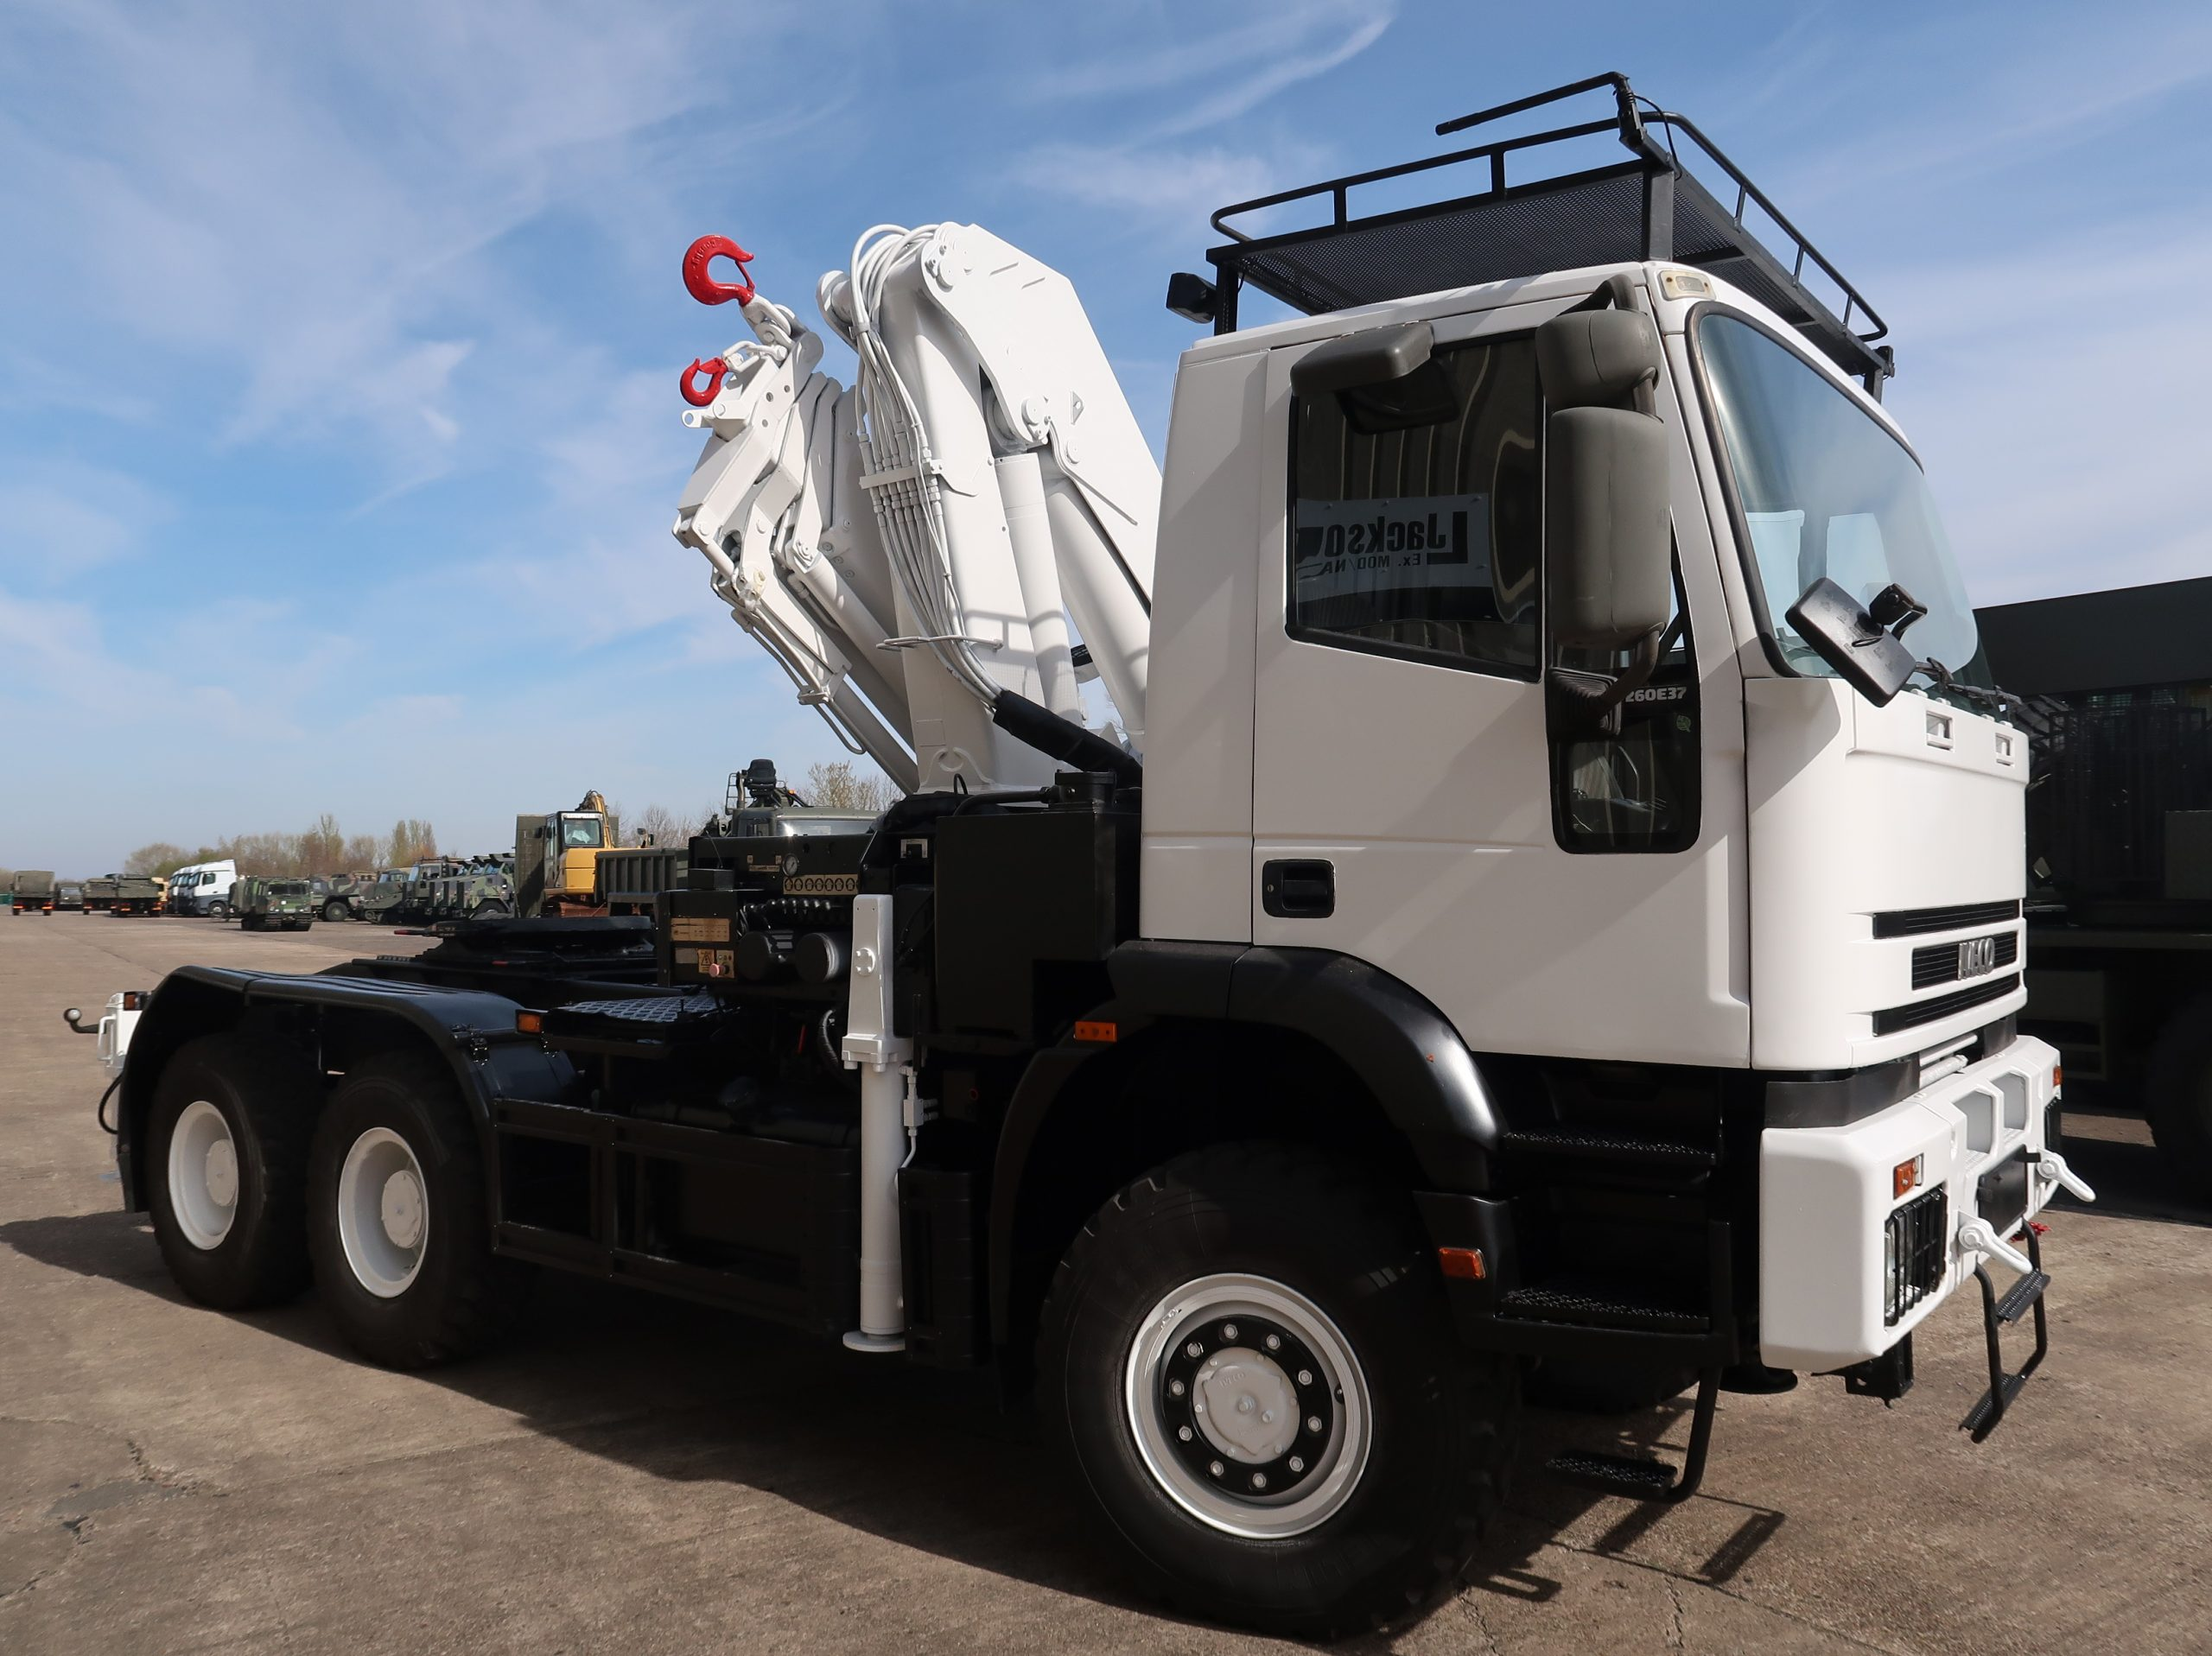 Iveco Eurotrakker 260E37 6x6 LHD tractor with crane 50317   used military vehicles, MOD surplus for sale